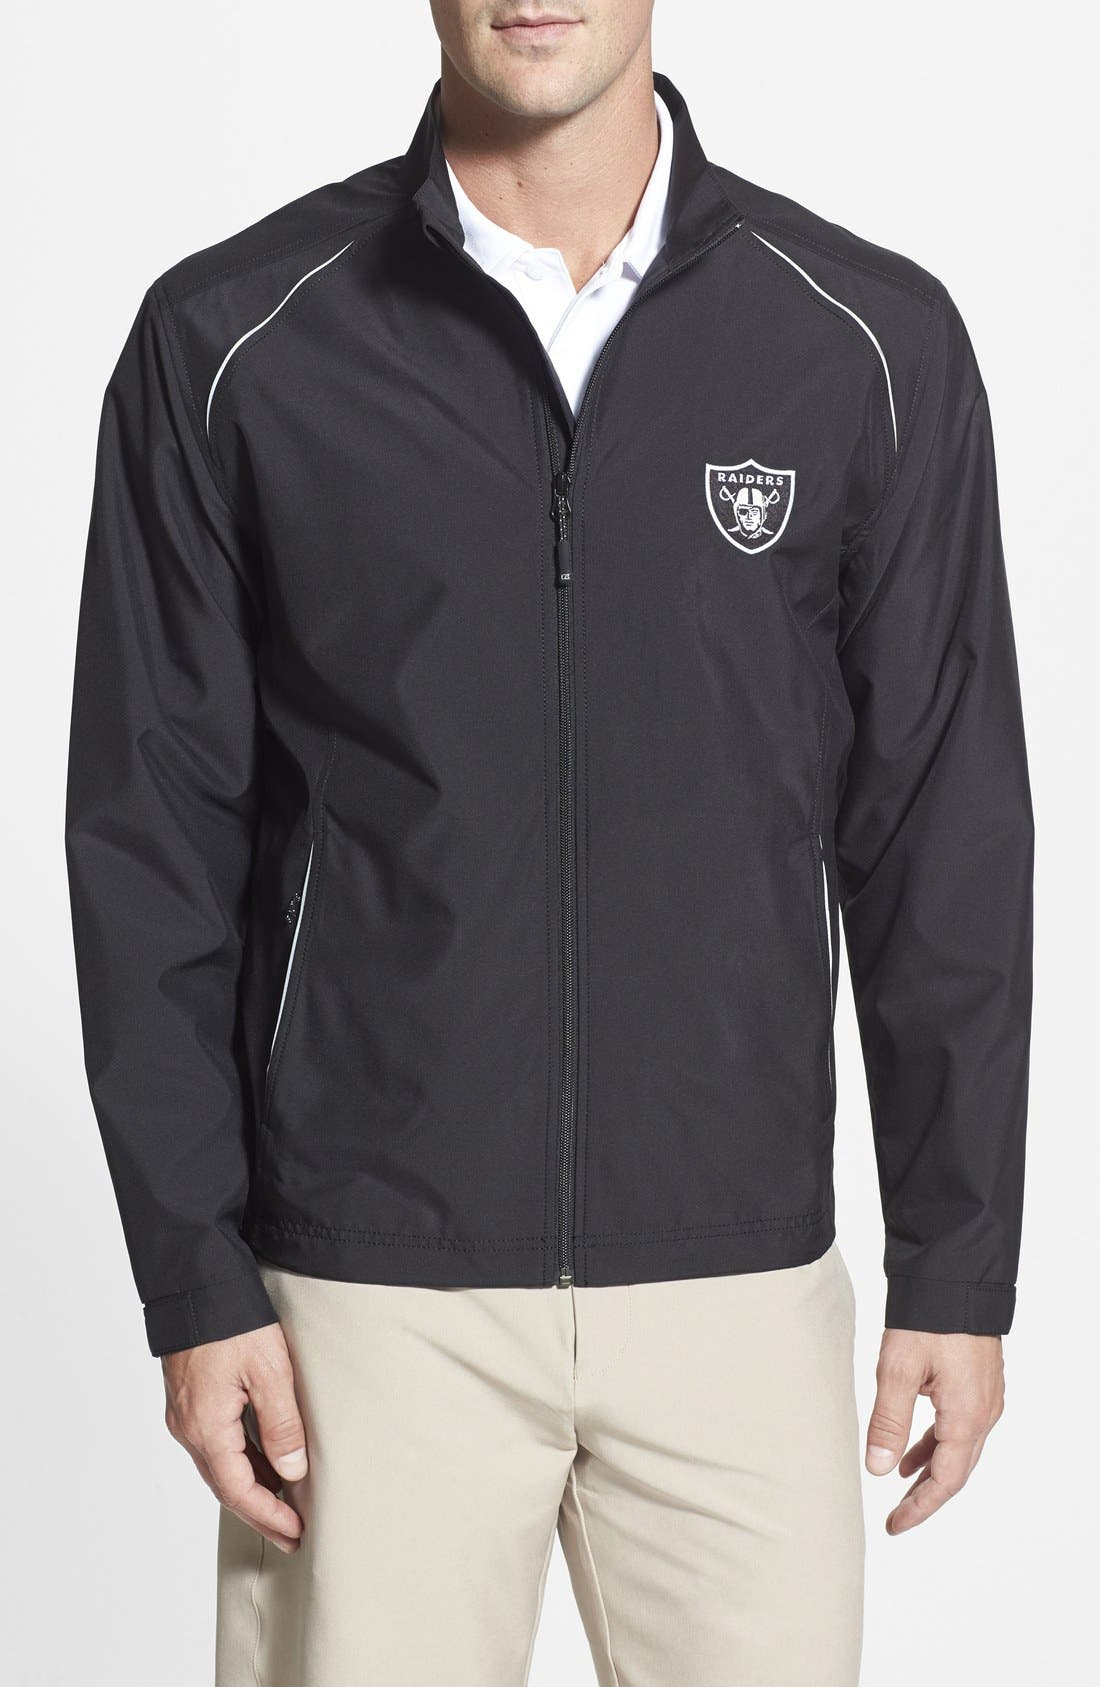 CUTTER & BUCK 'Oakland Raiders - Beacon' WeatherTec